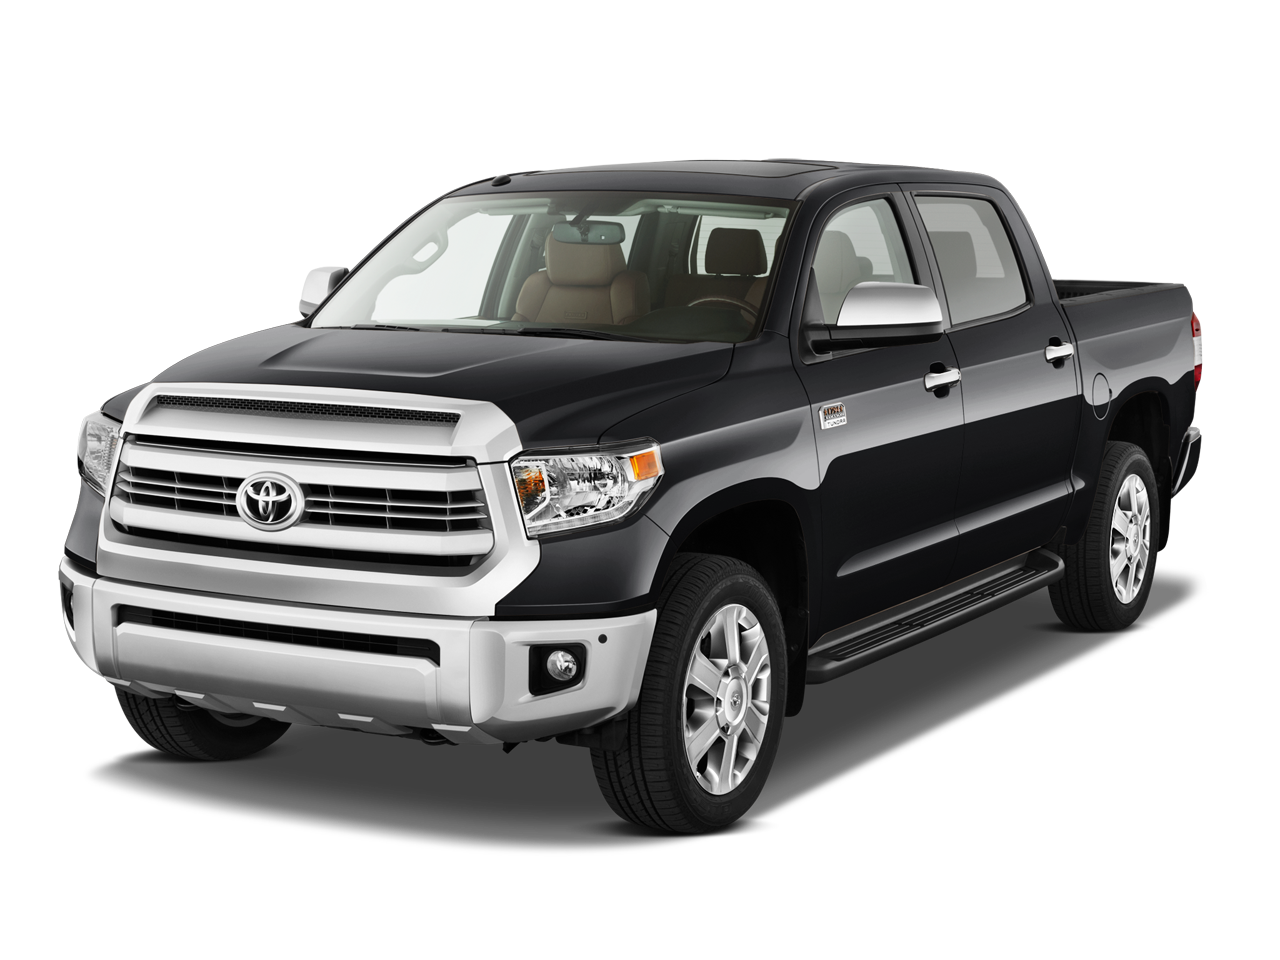 new 2017 toyota tundra 1794 edition crew max pickup near herculaneum mo twin city toyota. Black Bedroom Furniture Sets. Home Design Ideas